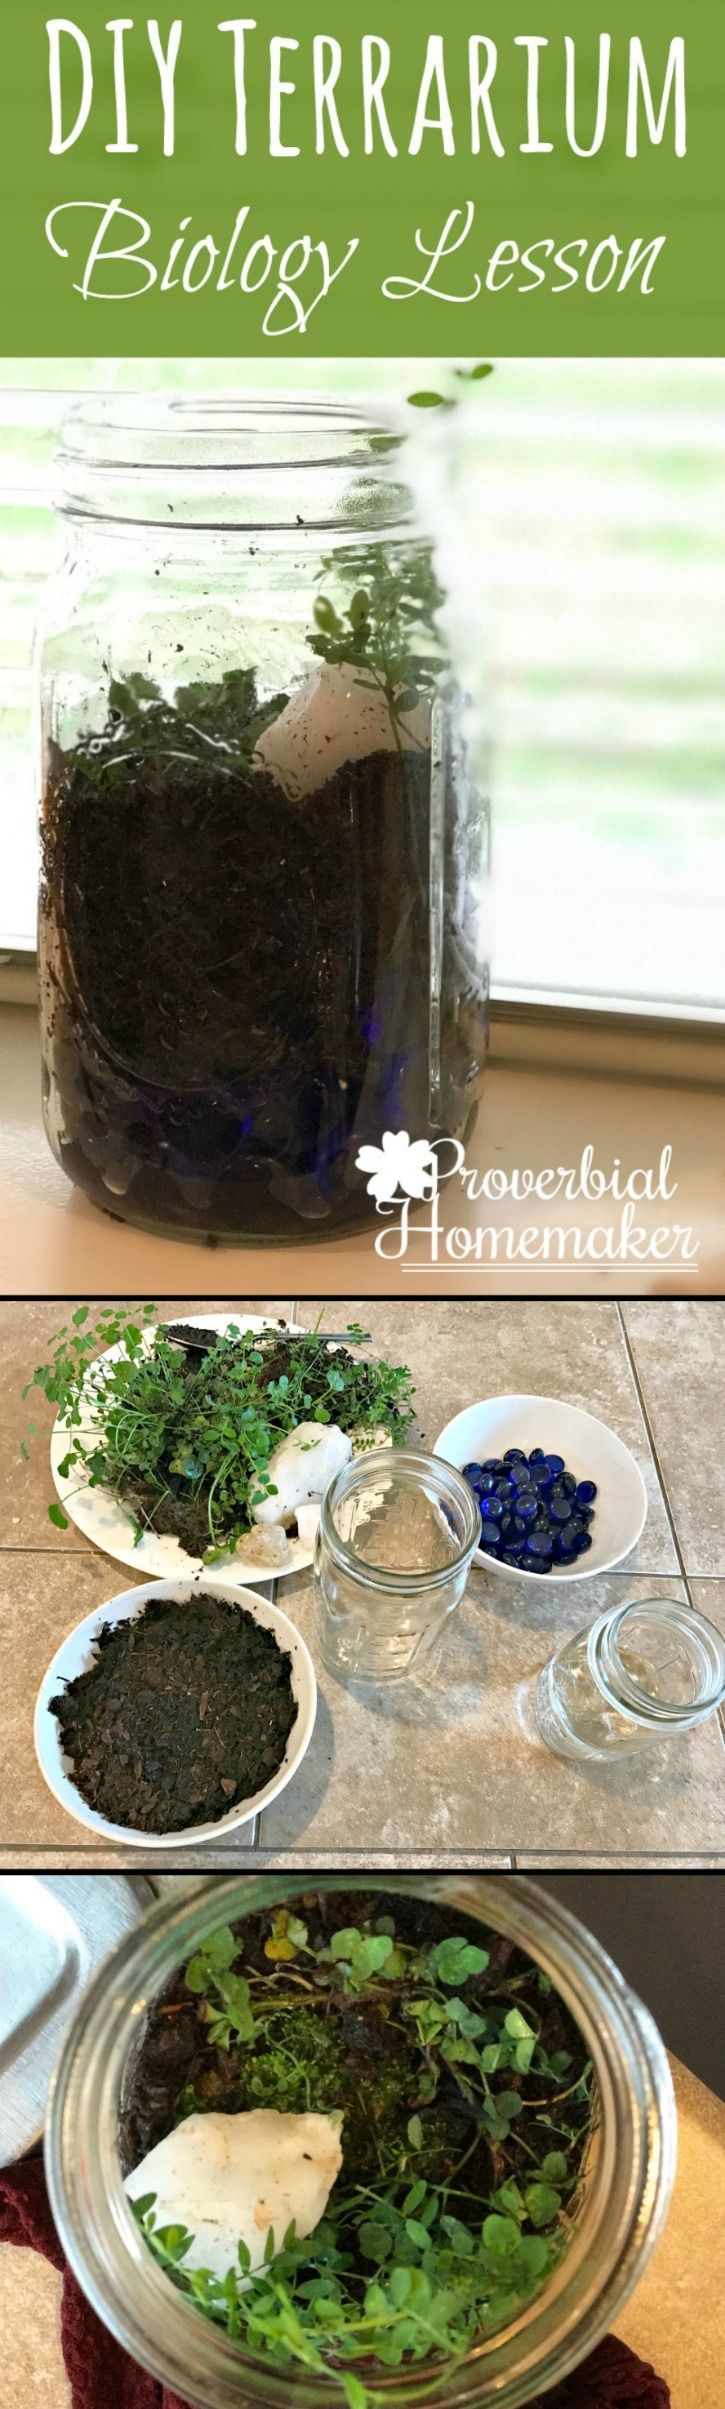 Make a DIY Terrarium with your kids! This is a simple, frugal, and hands-on science activity that's perfect for a homeschool plant unit or just for fun!